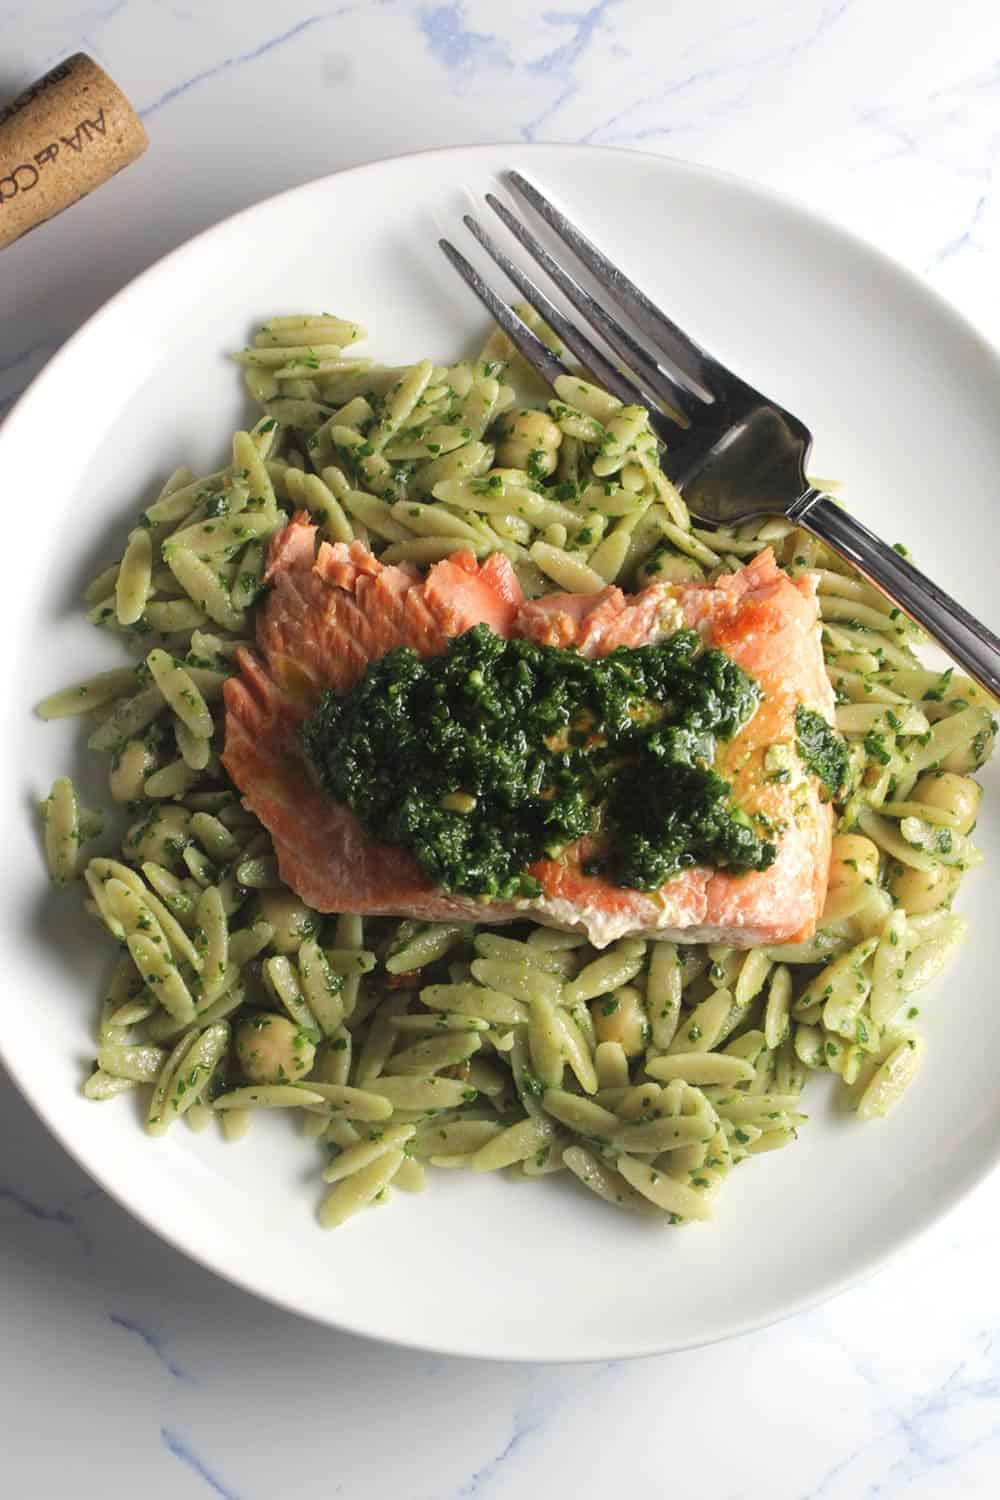 salmon plated with pesto and orzo